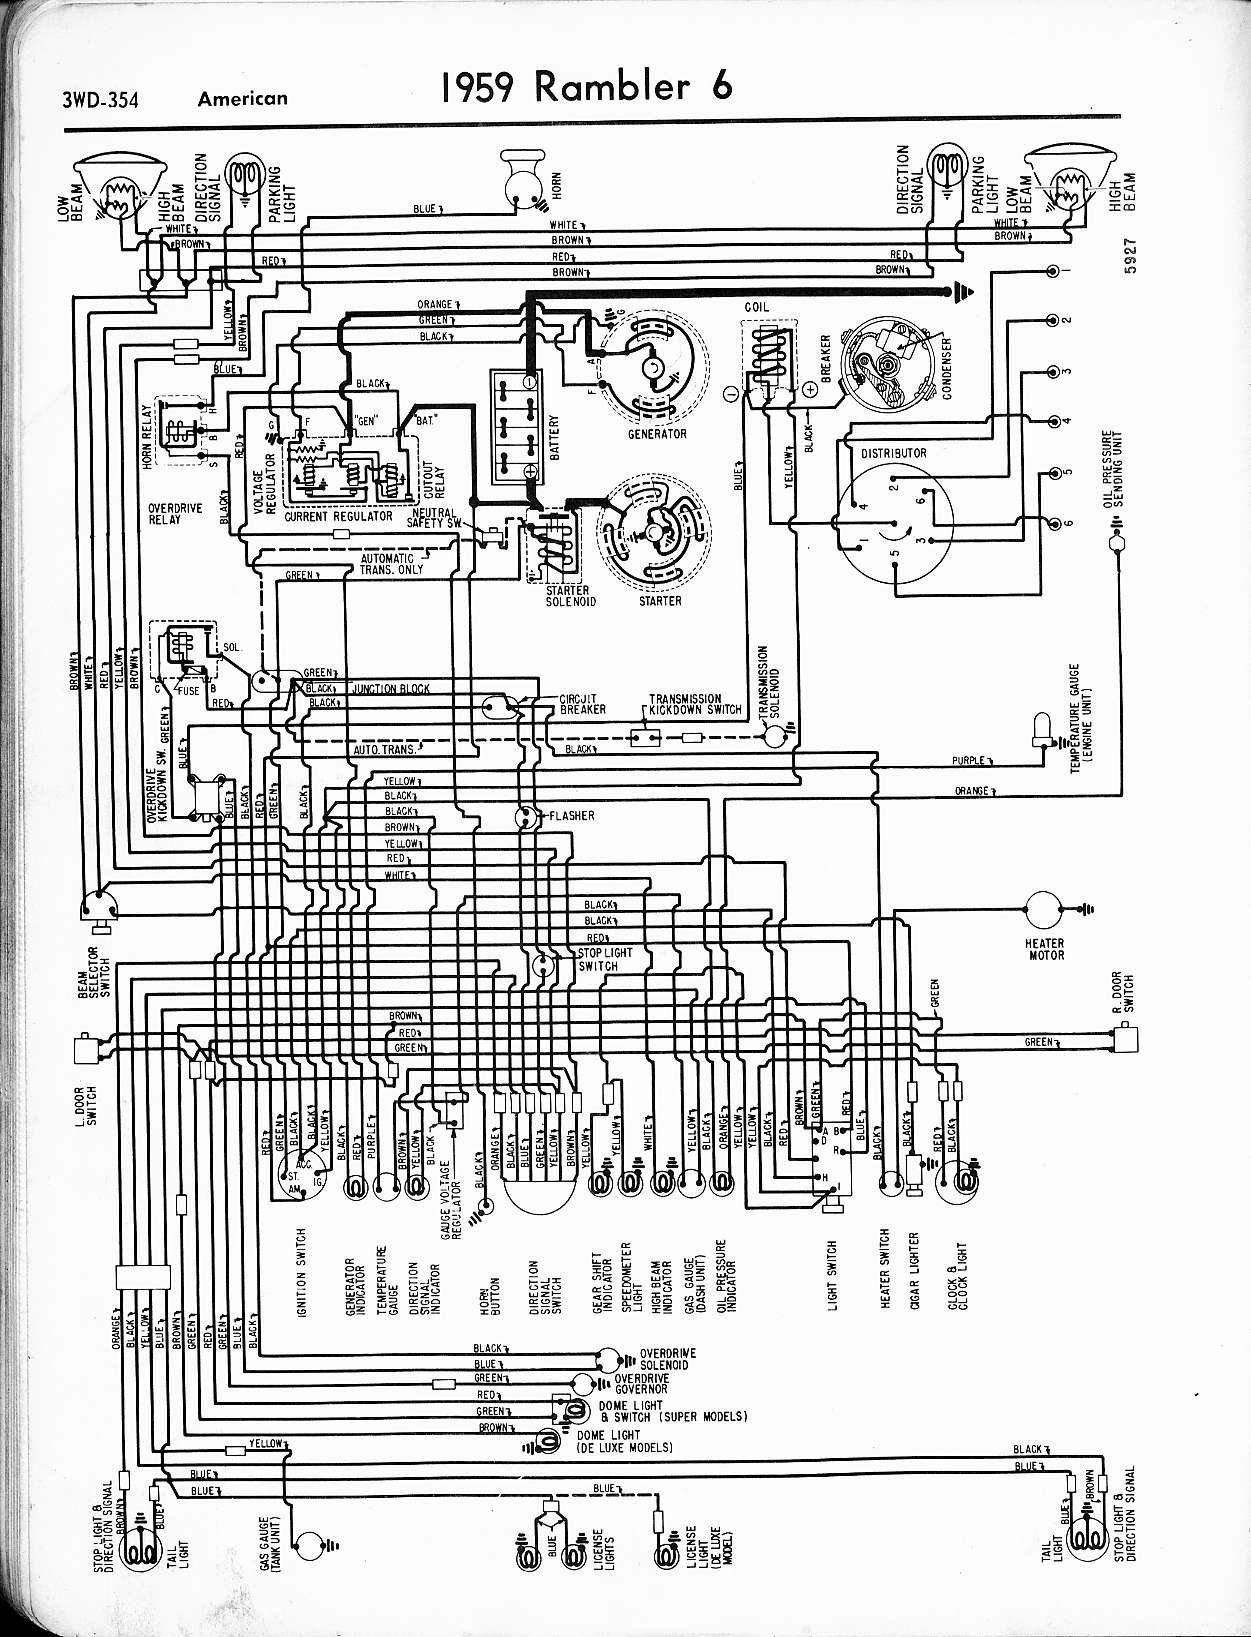 american clipper wiring diagrams